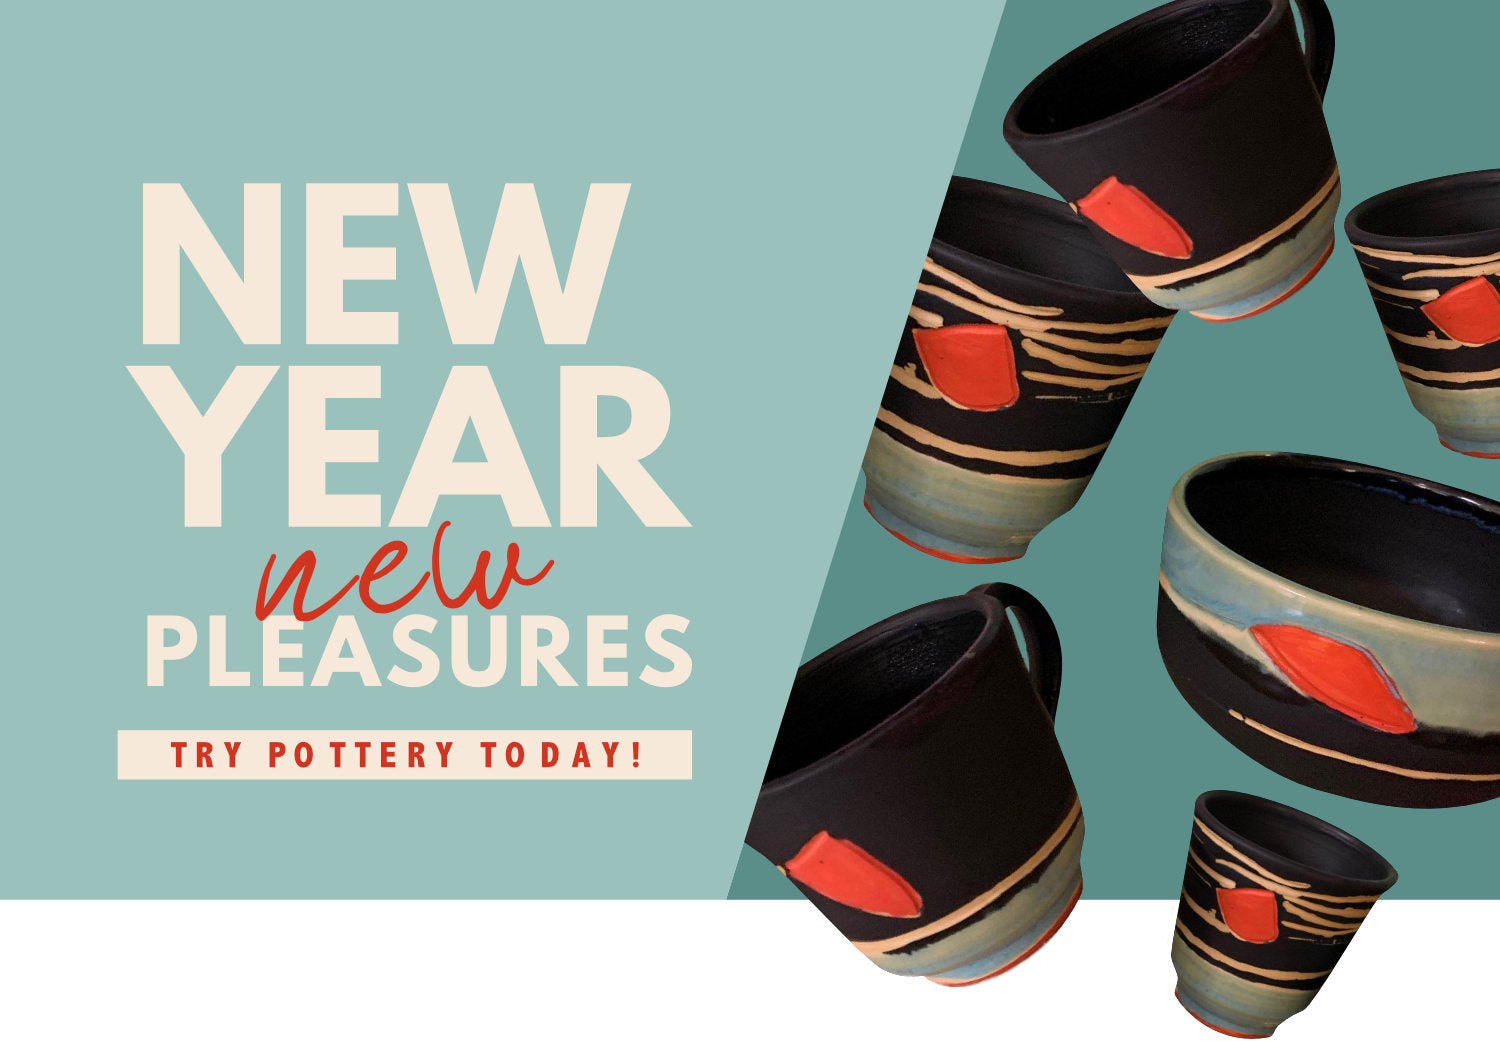 Start the New Year off with the pleasures that come with learning Pottery